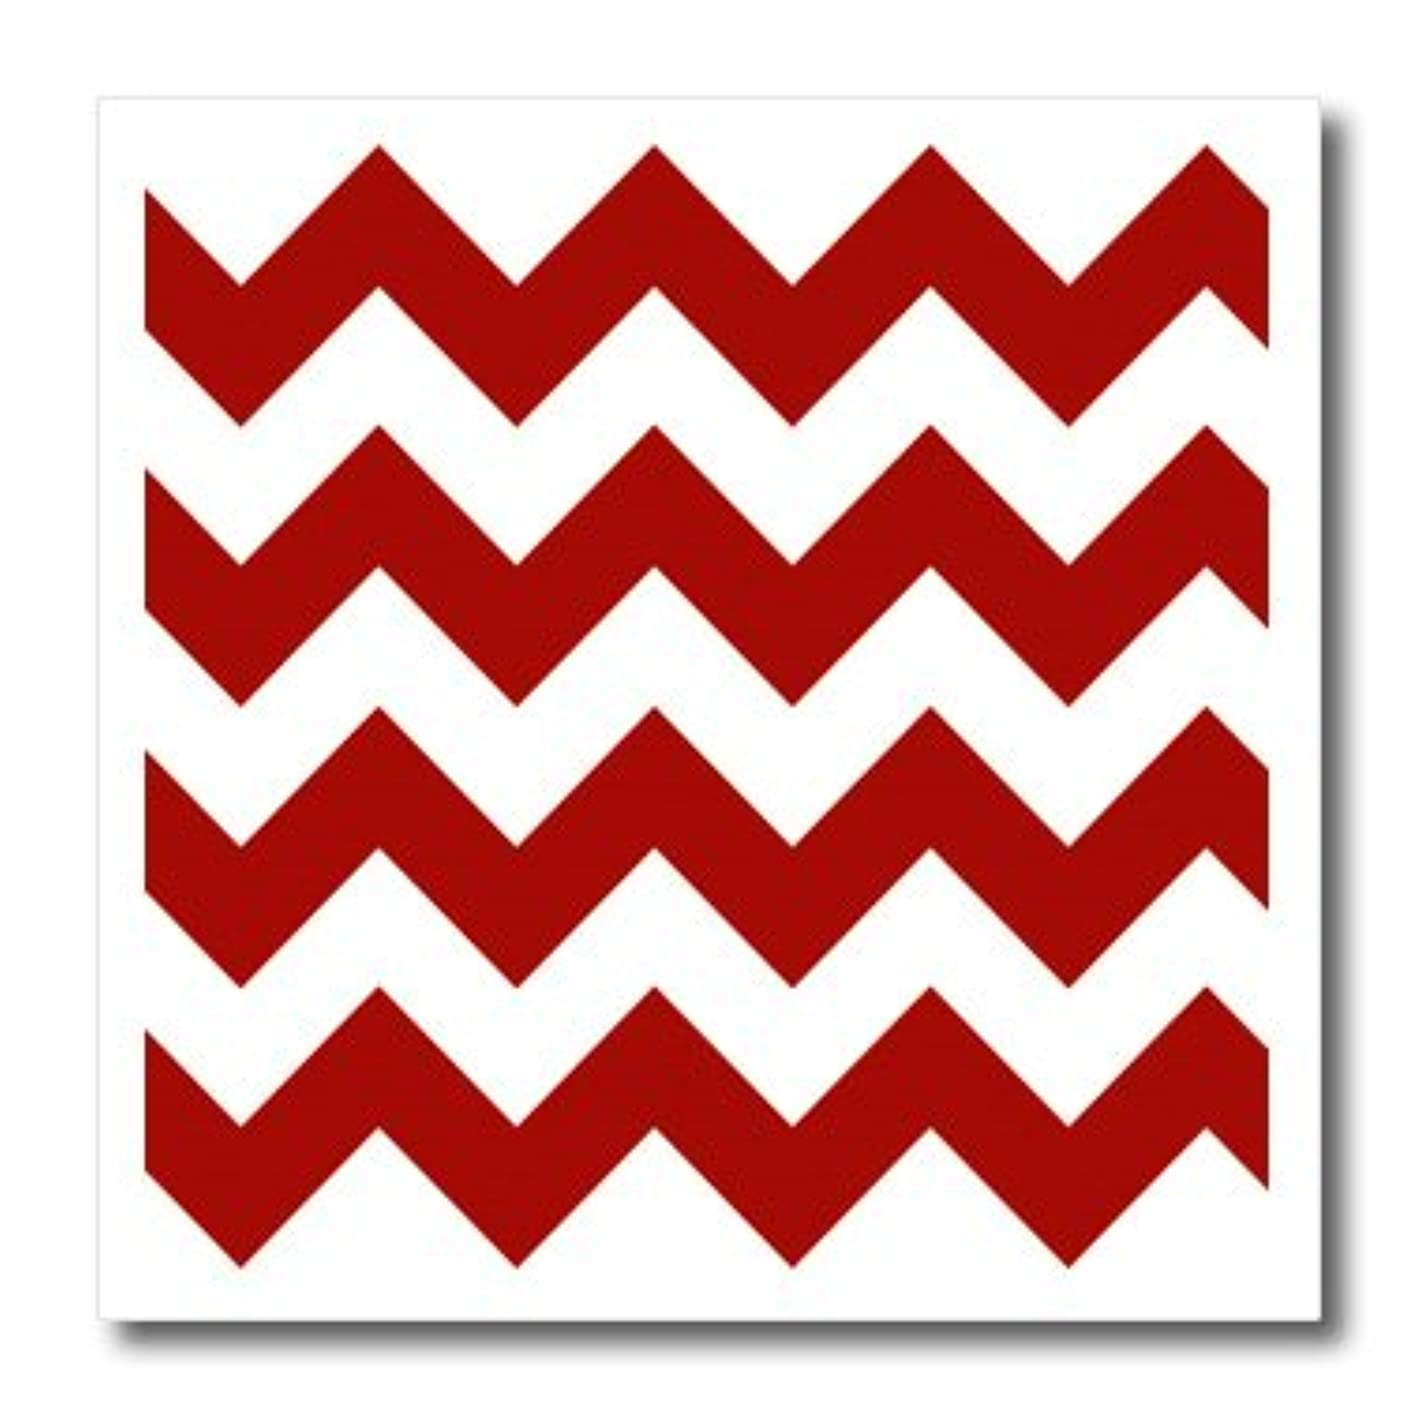 3dRose ht_149892_2 Red and White Chevron Pattern Iron on Heat Transfer, 6 by 6-Inch, for White Material